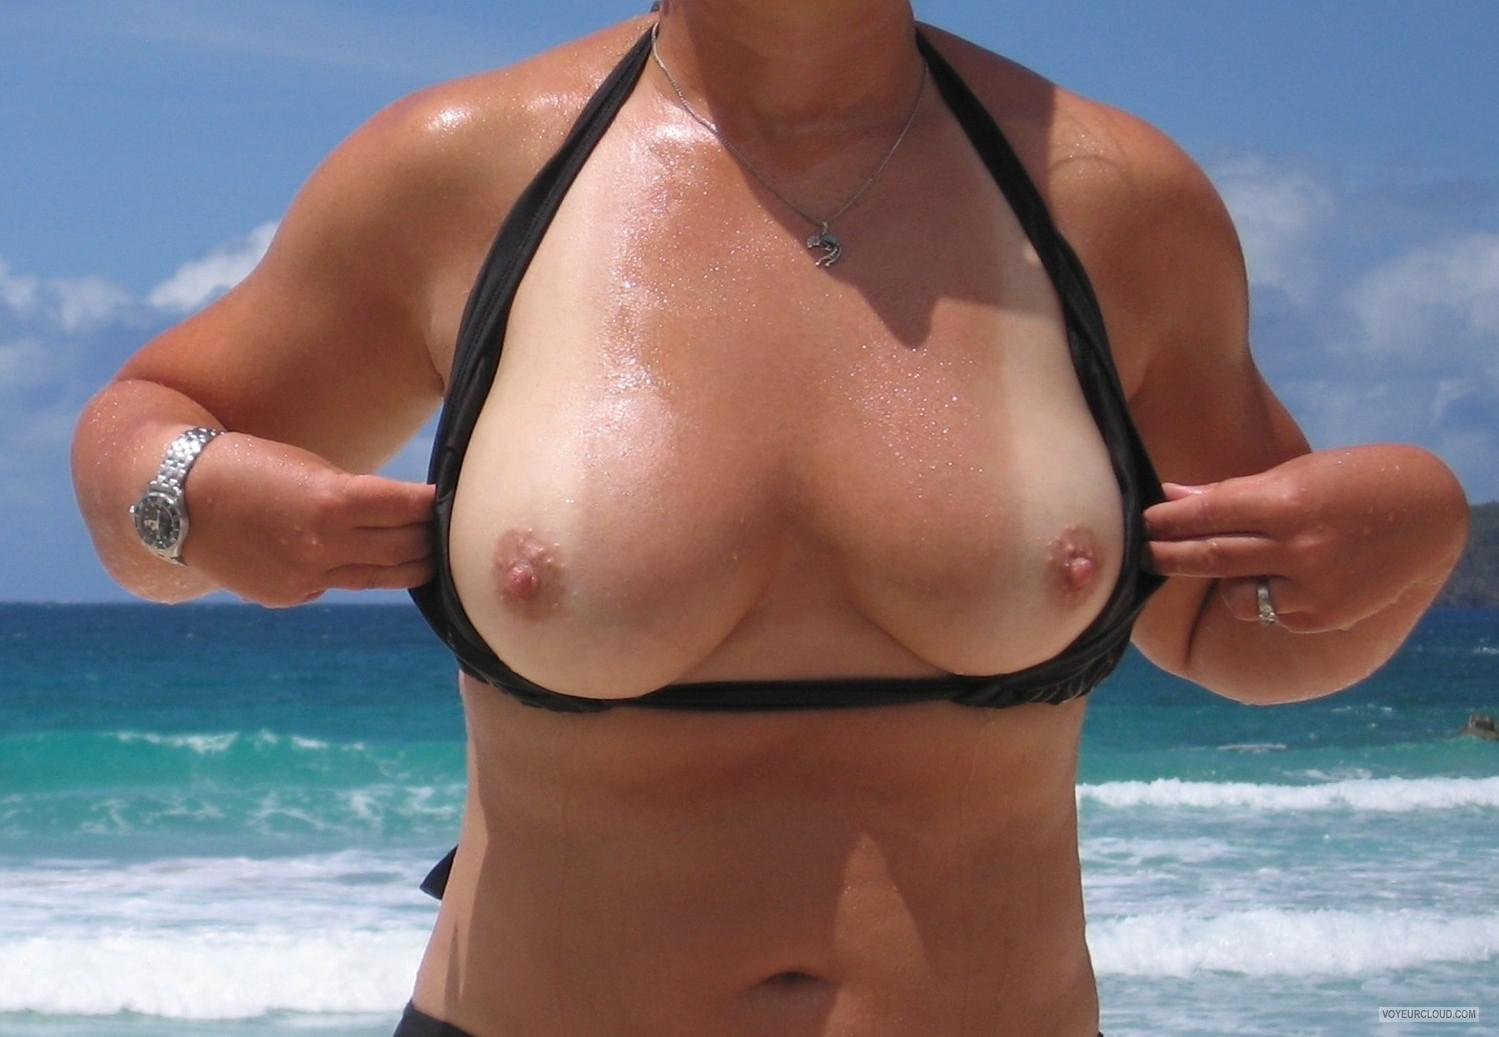 Tit Flash: My Tanlined Medium Tits - Faans Flasher from Angola